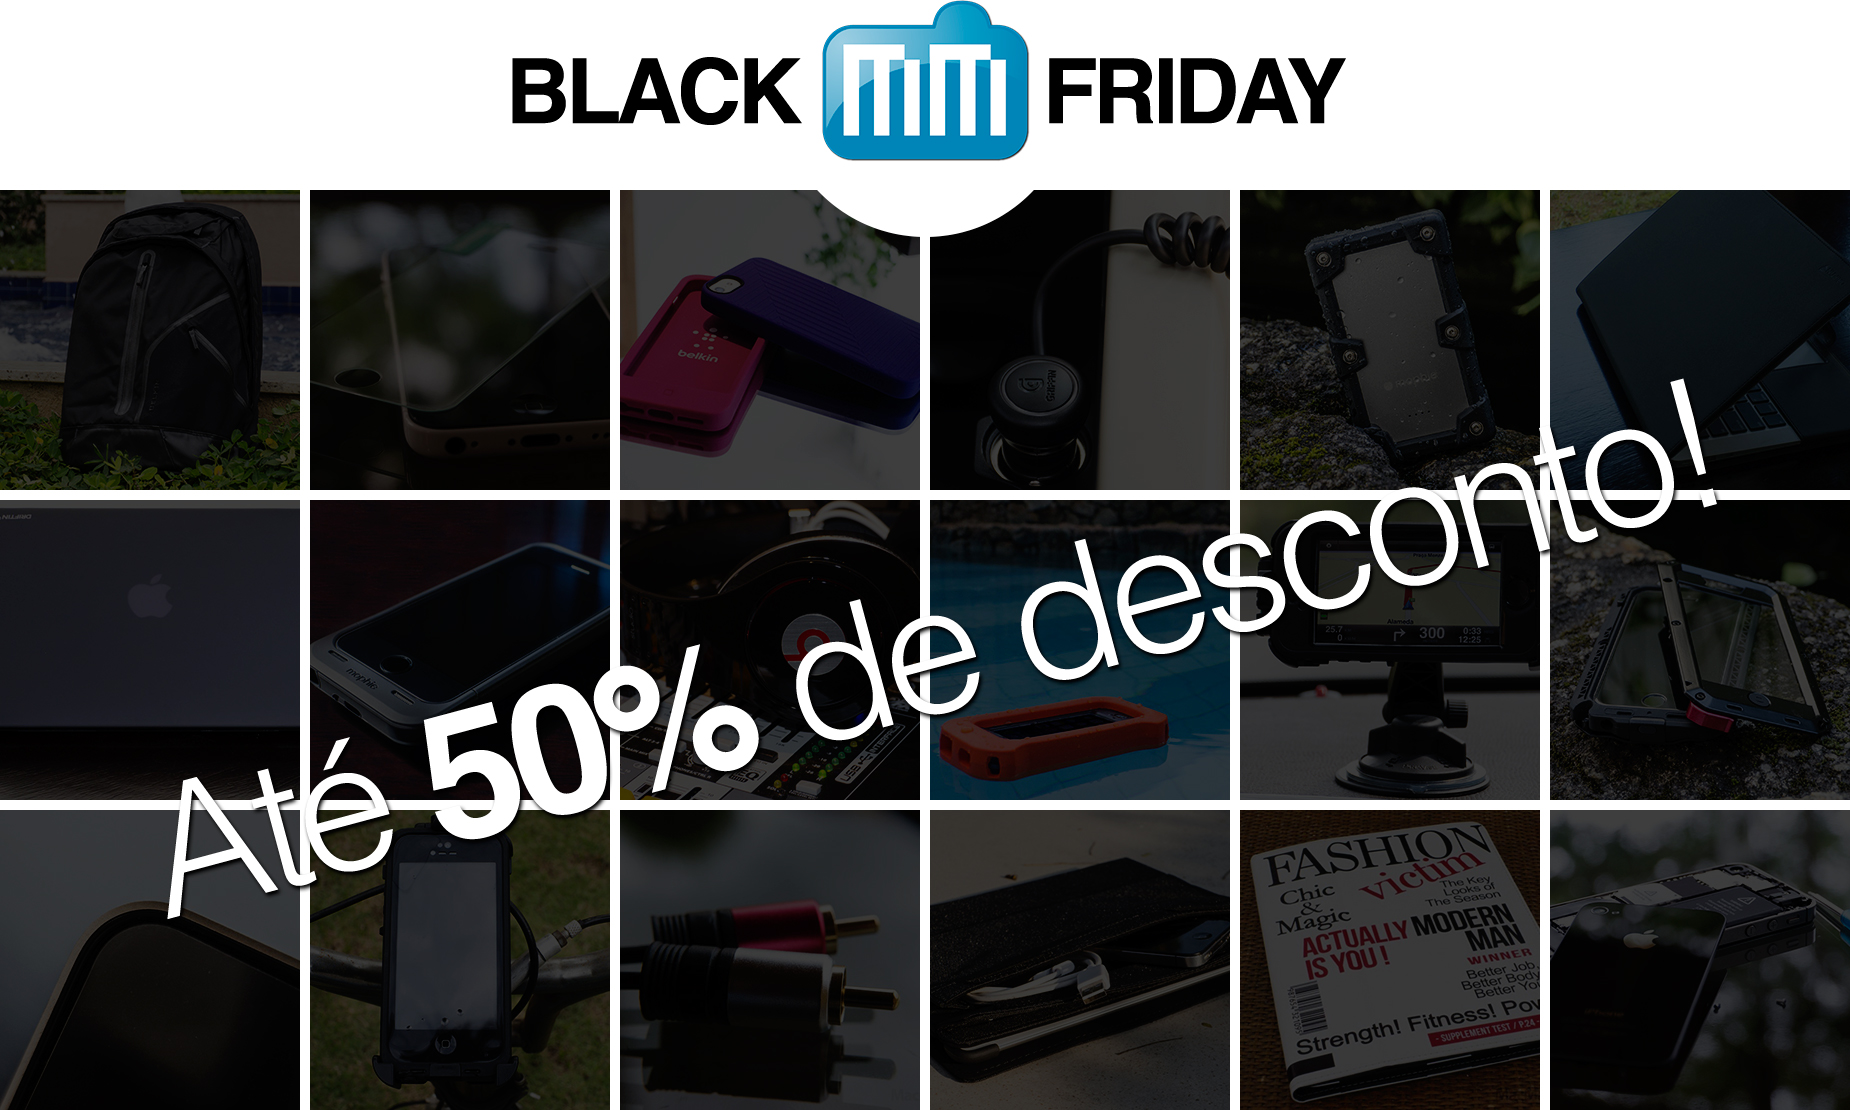 Loja MacMagazine na Black Friday 2014